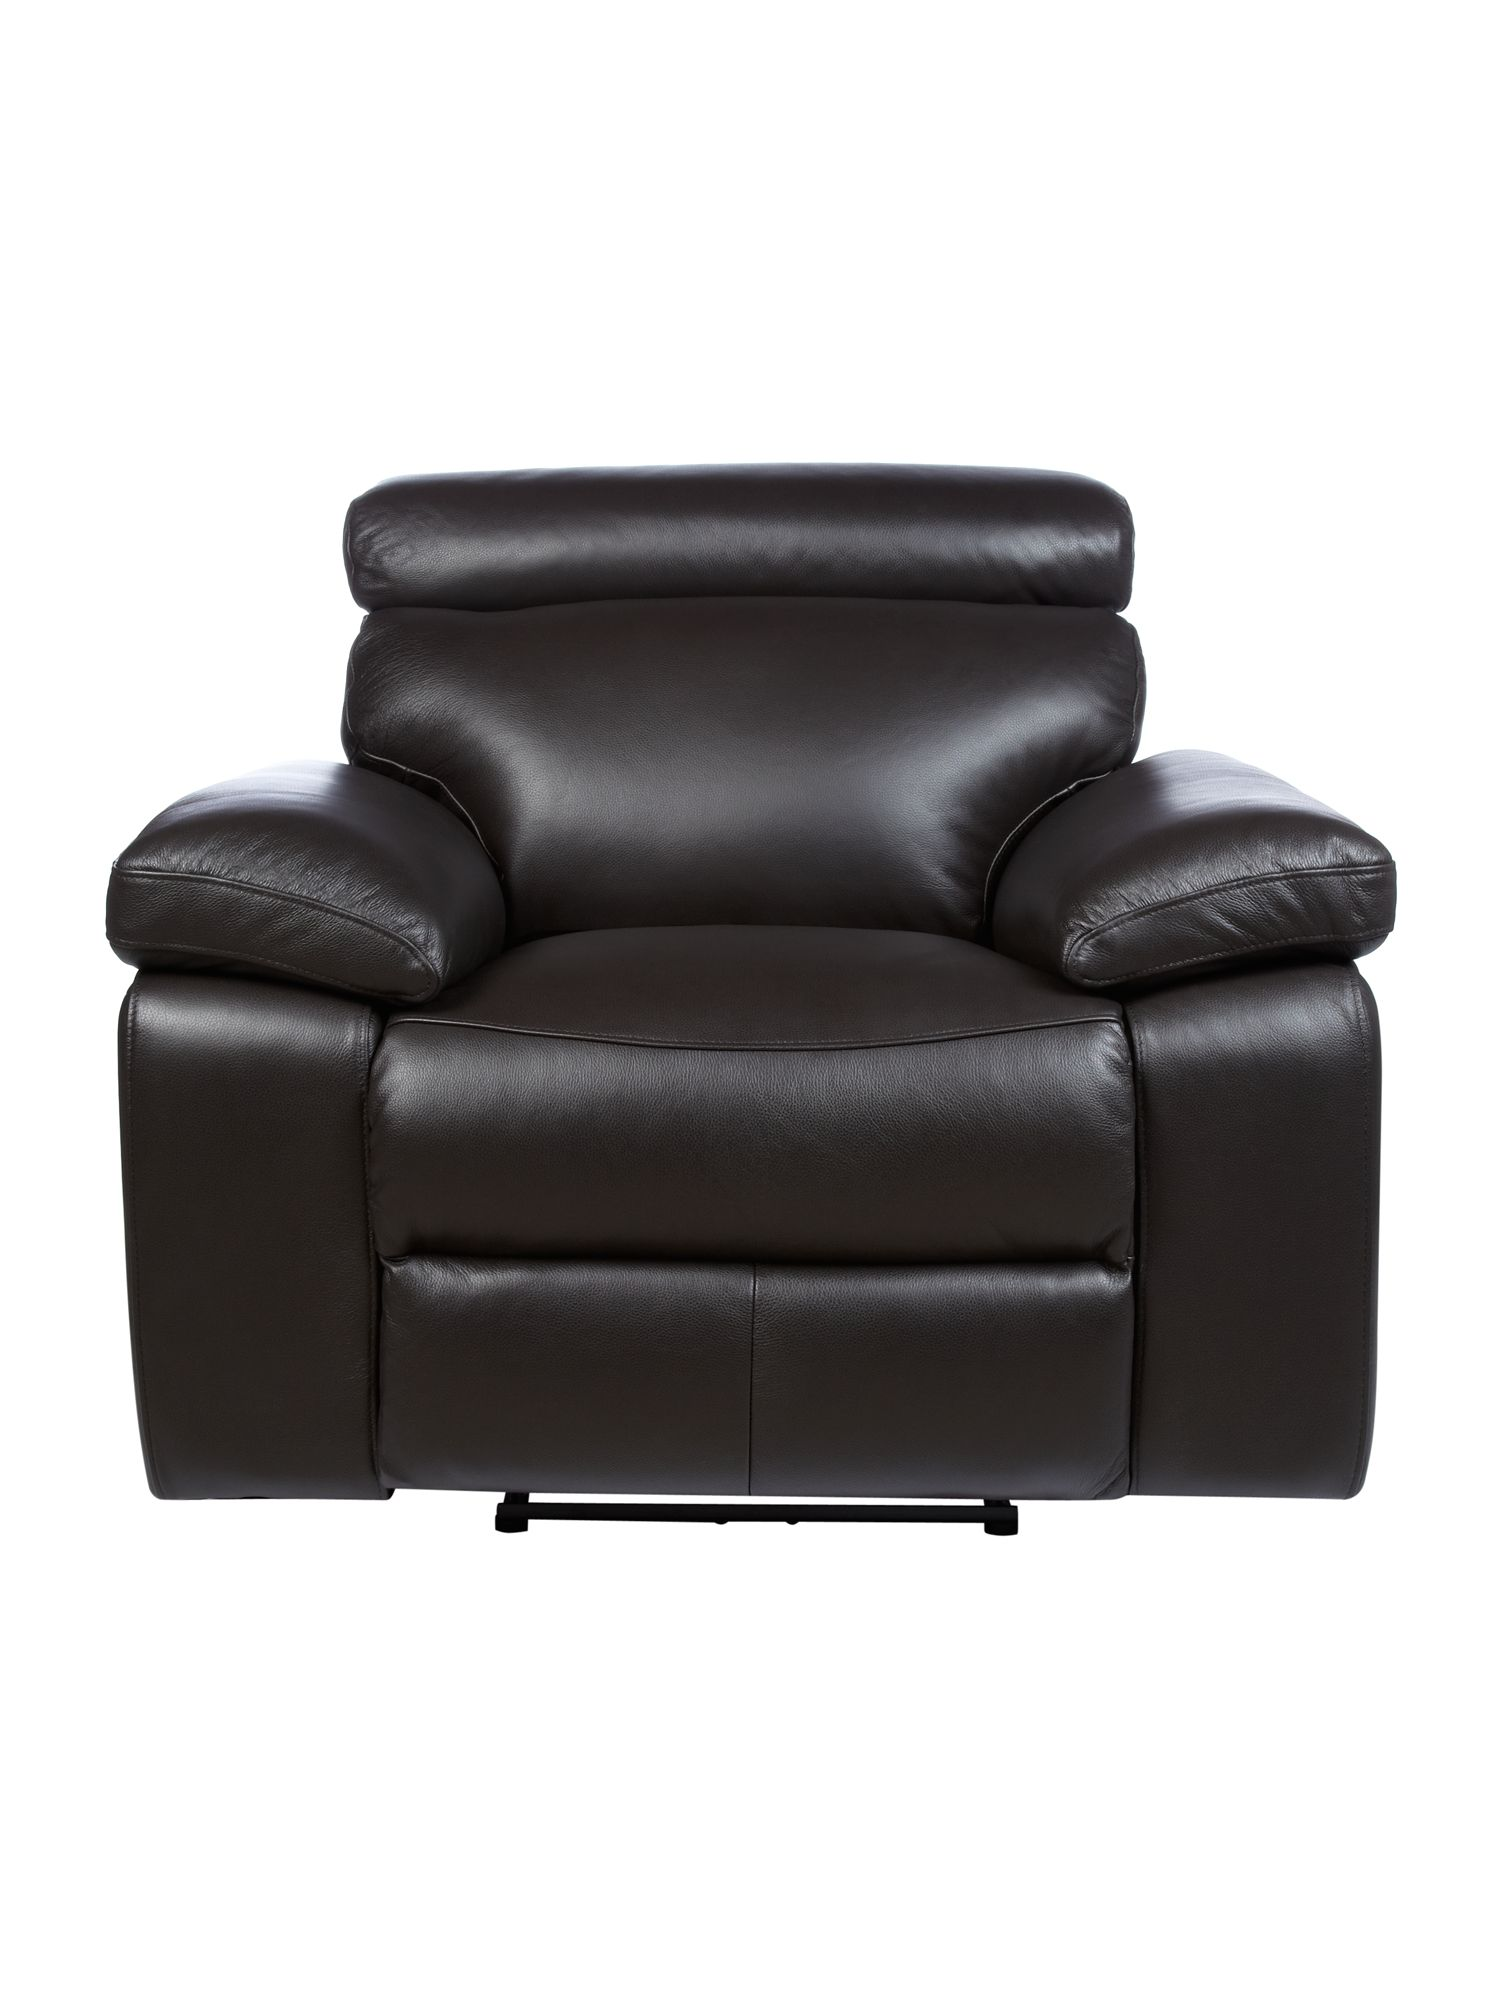 Catania motion recliner chair mink